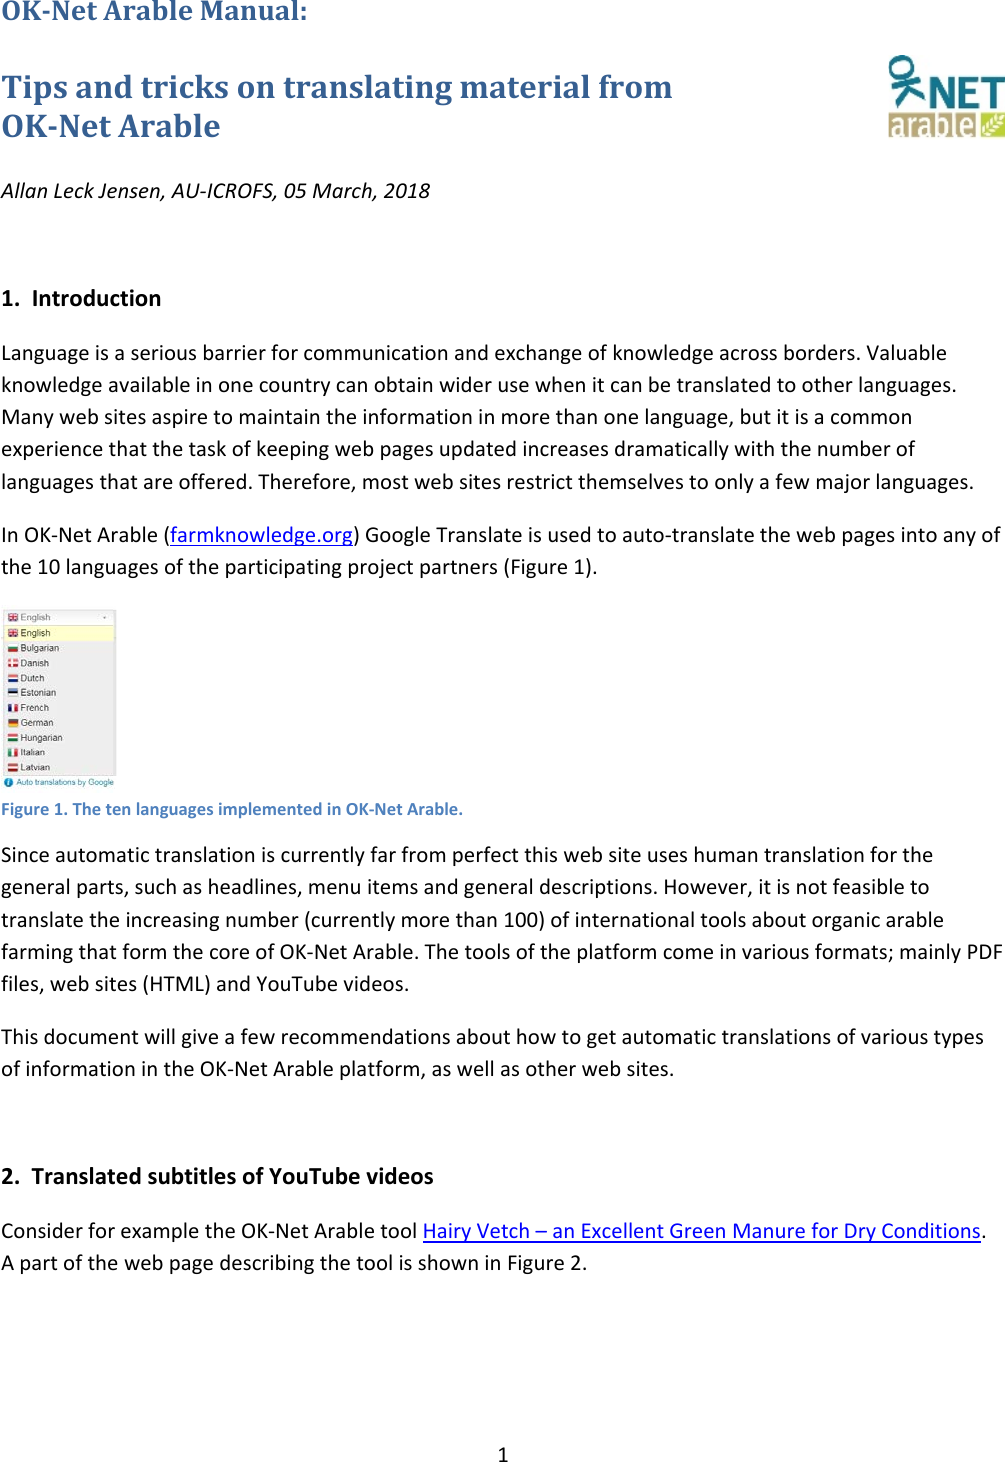 Tips And Tricks On Material Translation